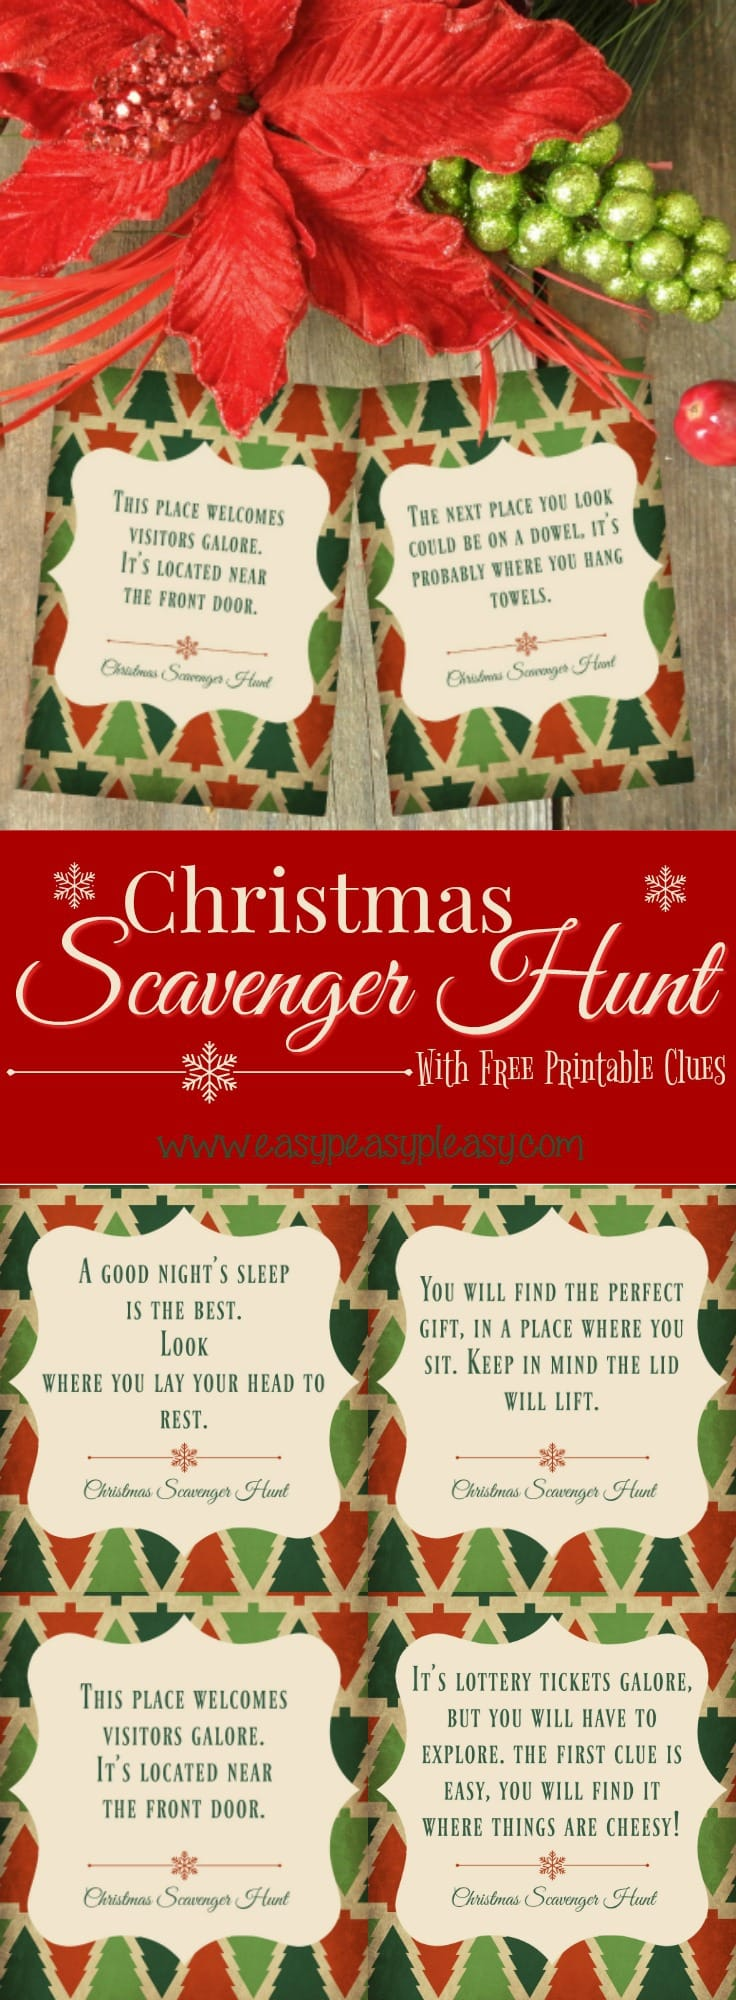 photo regarding Christmas Scavenger Hunt Printable Clues titled Xmas Scavenger Hunt With Absolutely free Printable Clues - Very simple